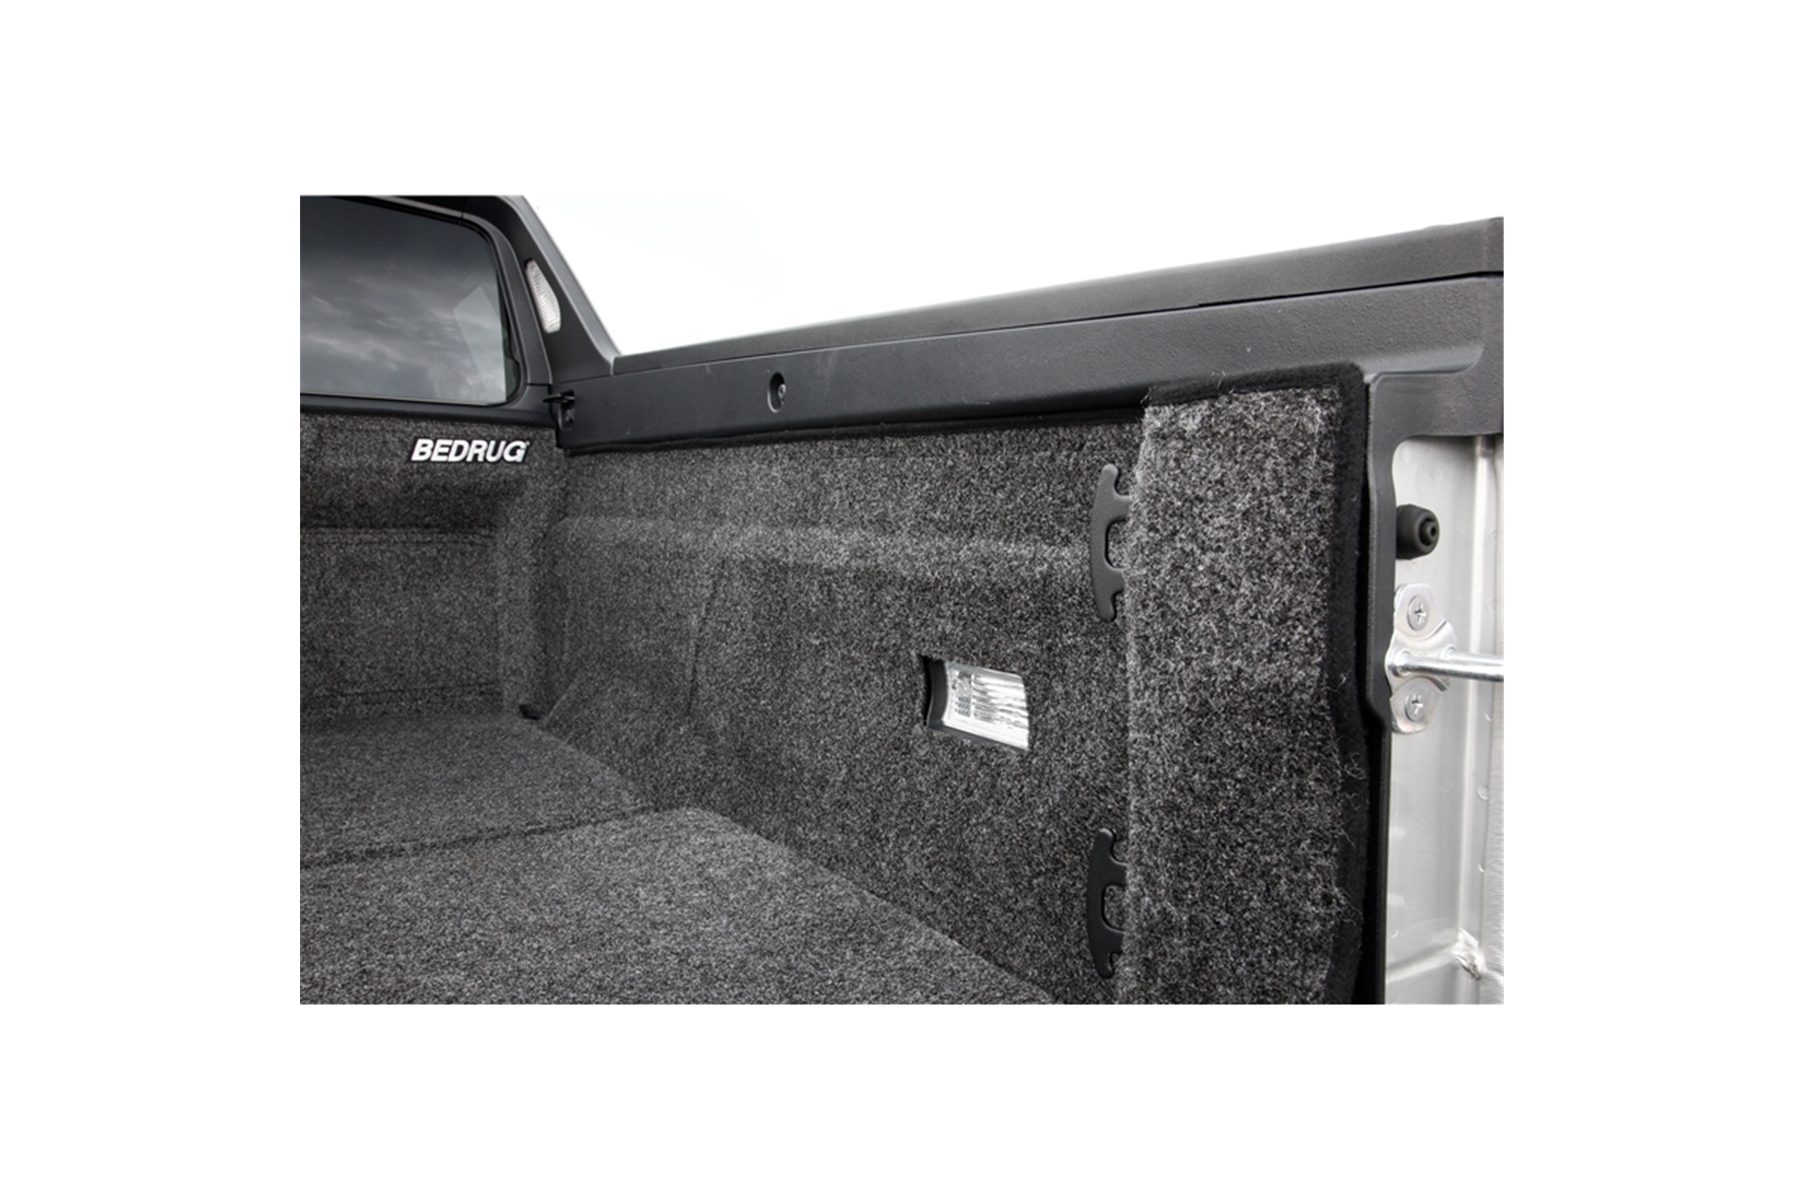 Bed Rug Bedrug Carpet Truck Bed Liners